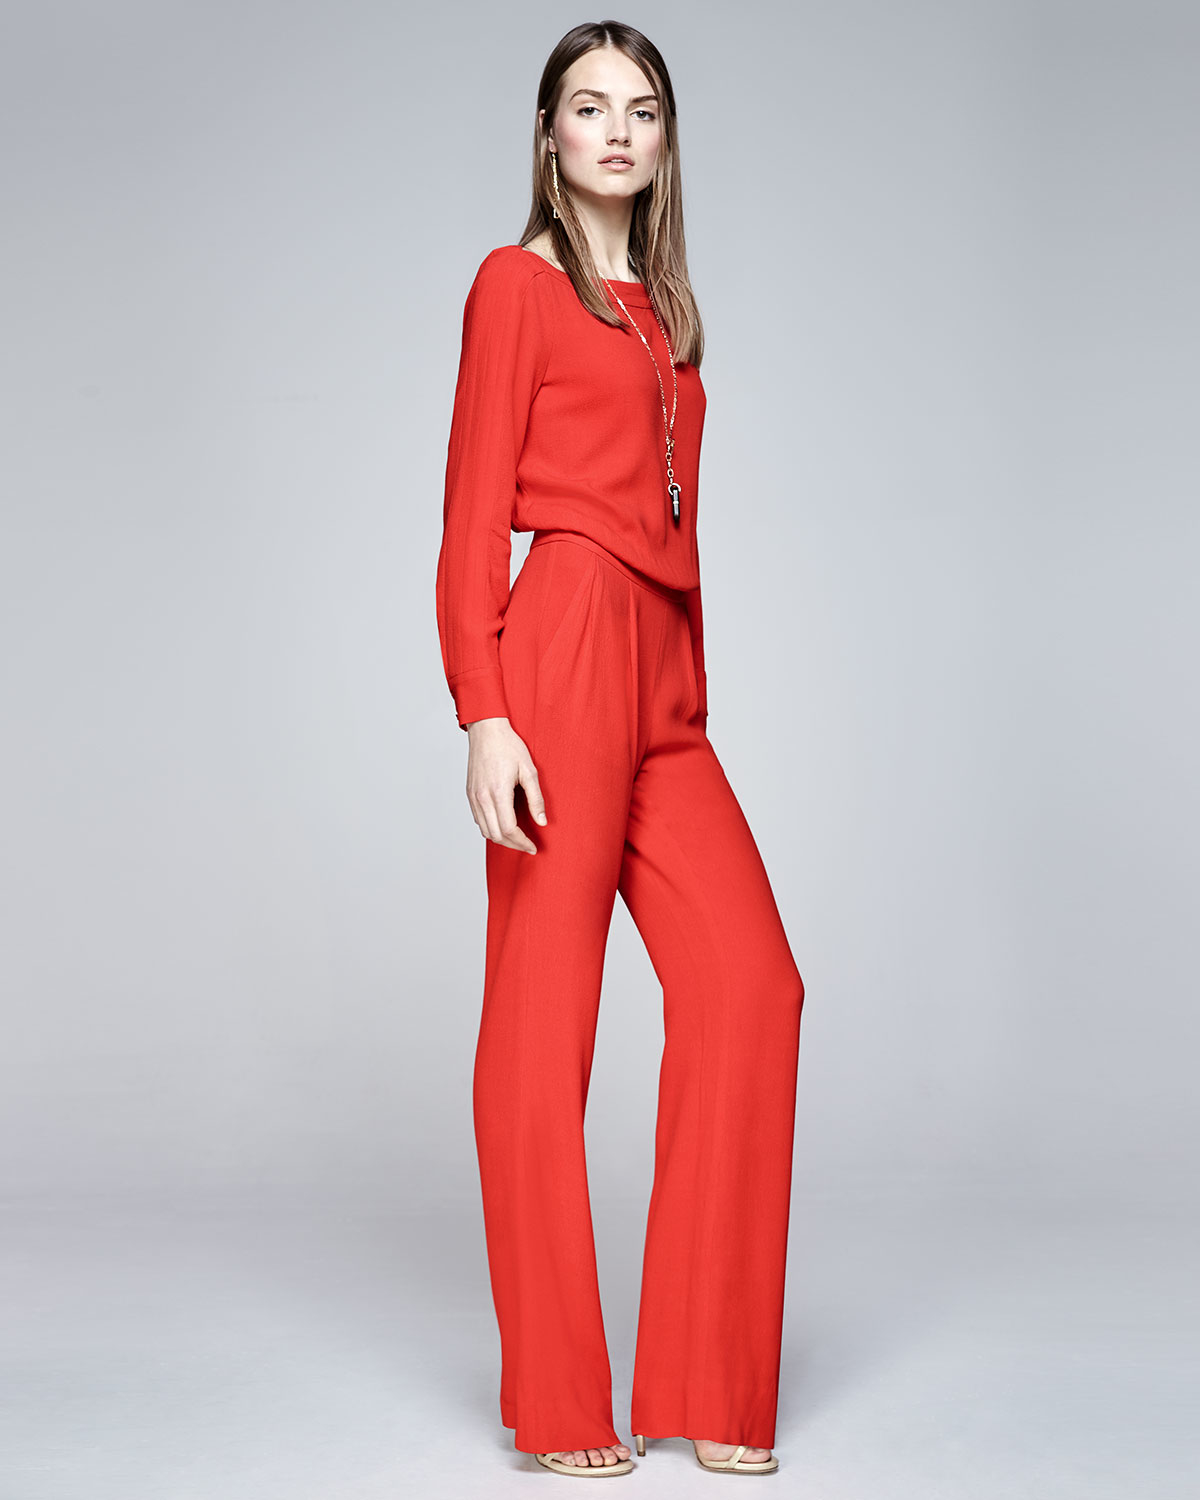 a0a4175a4fd6 Diane von Furstenberg Cynthia Long-Sleeve Jumpsuit in Red - Lyst